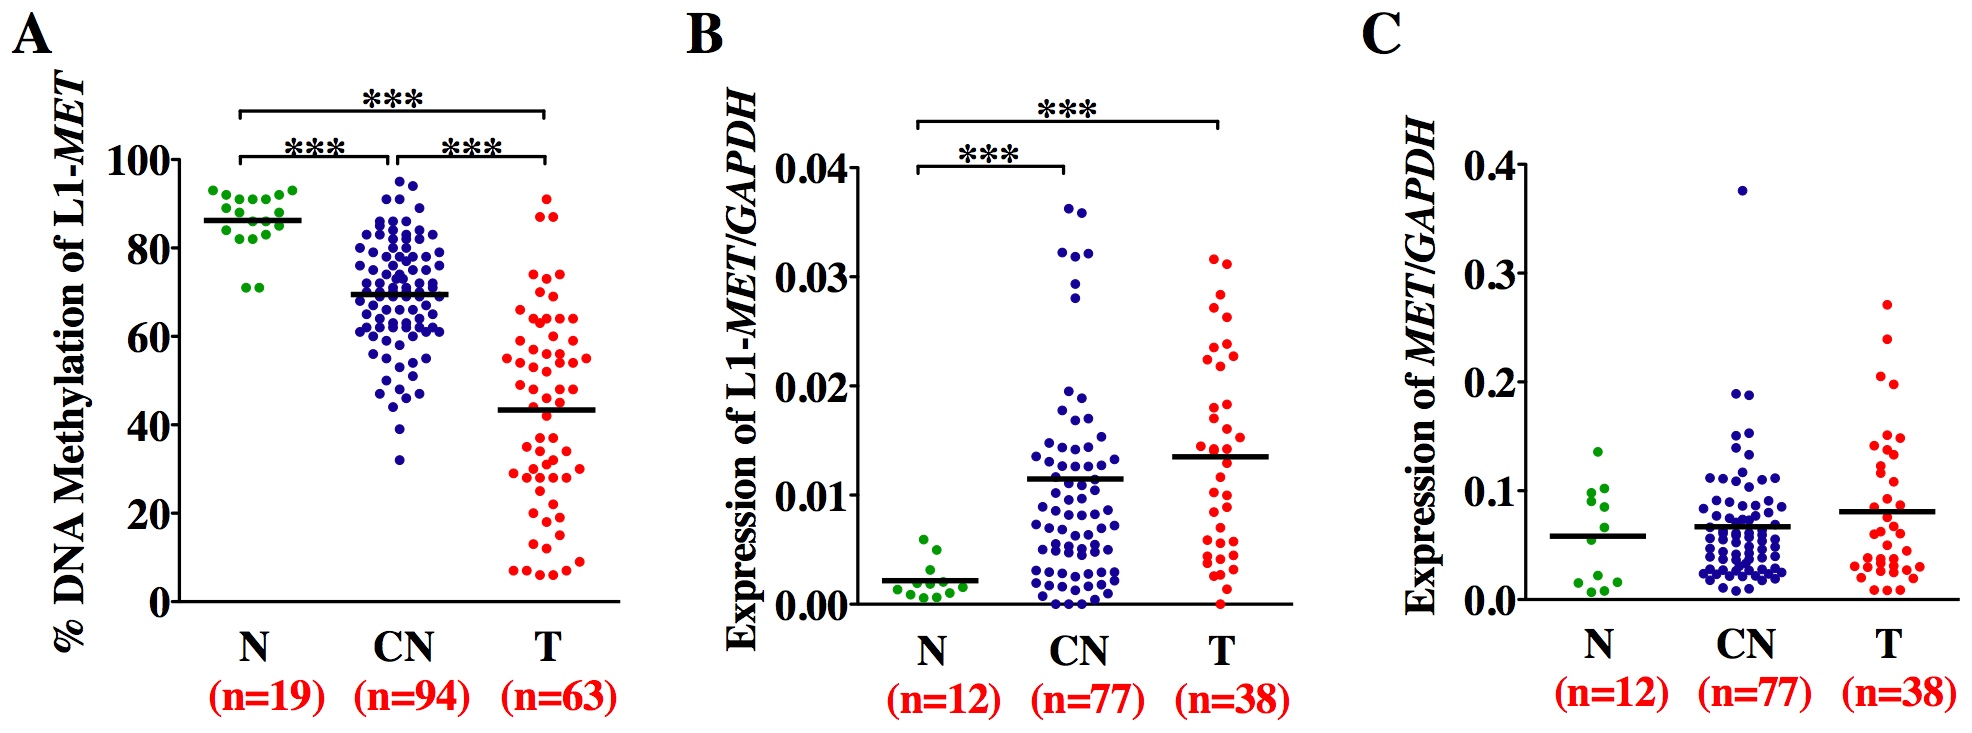 Methylation and expression status of L1-<i>MET</i> correlates in bladder tissues.